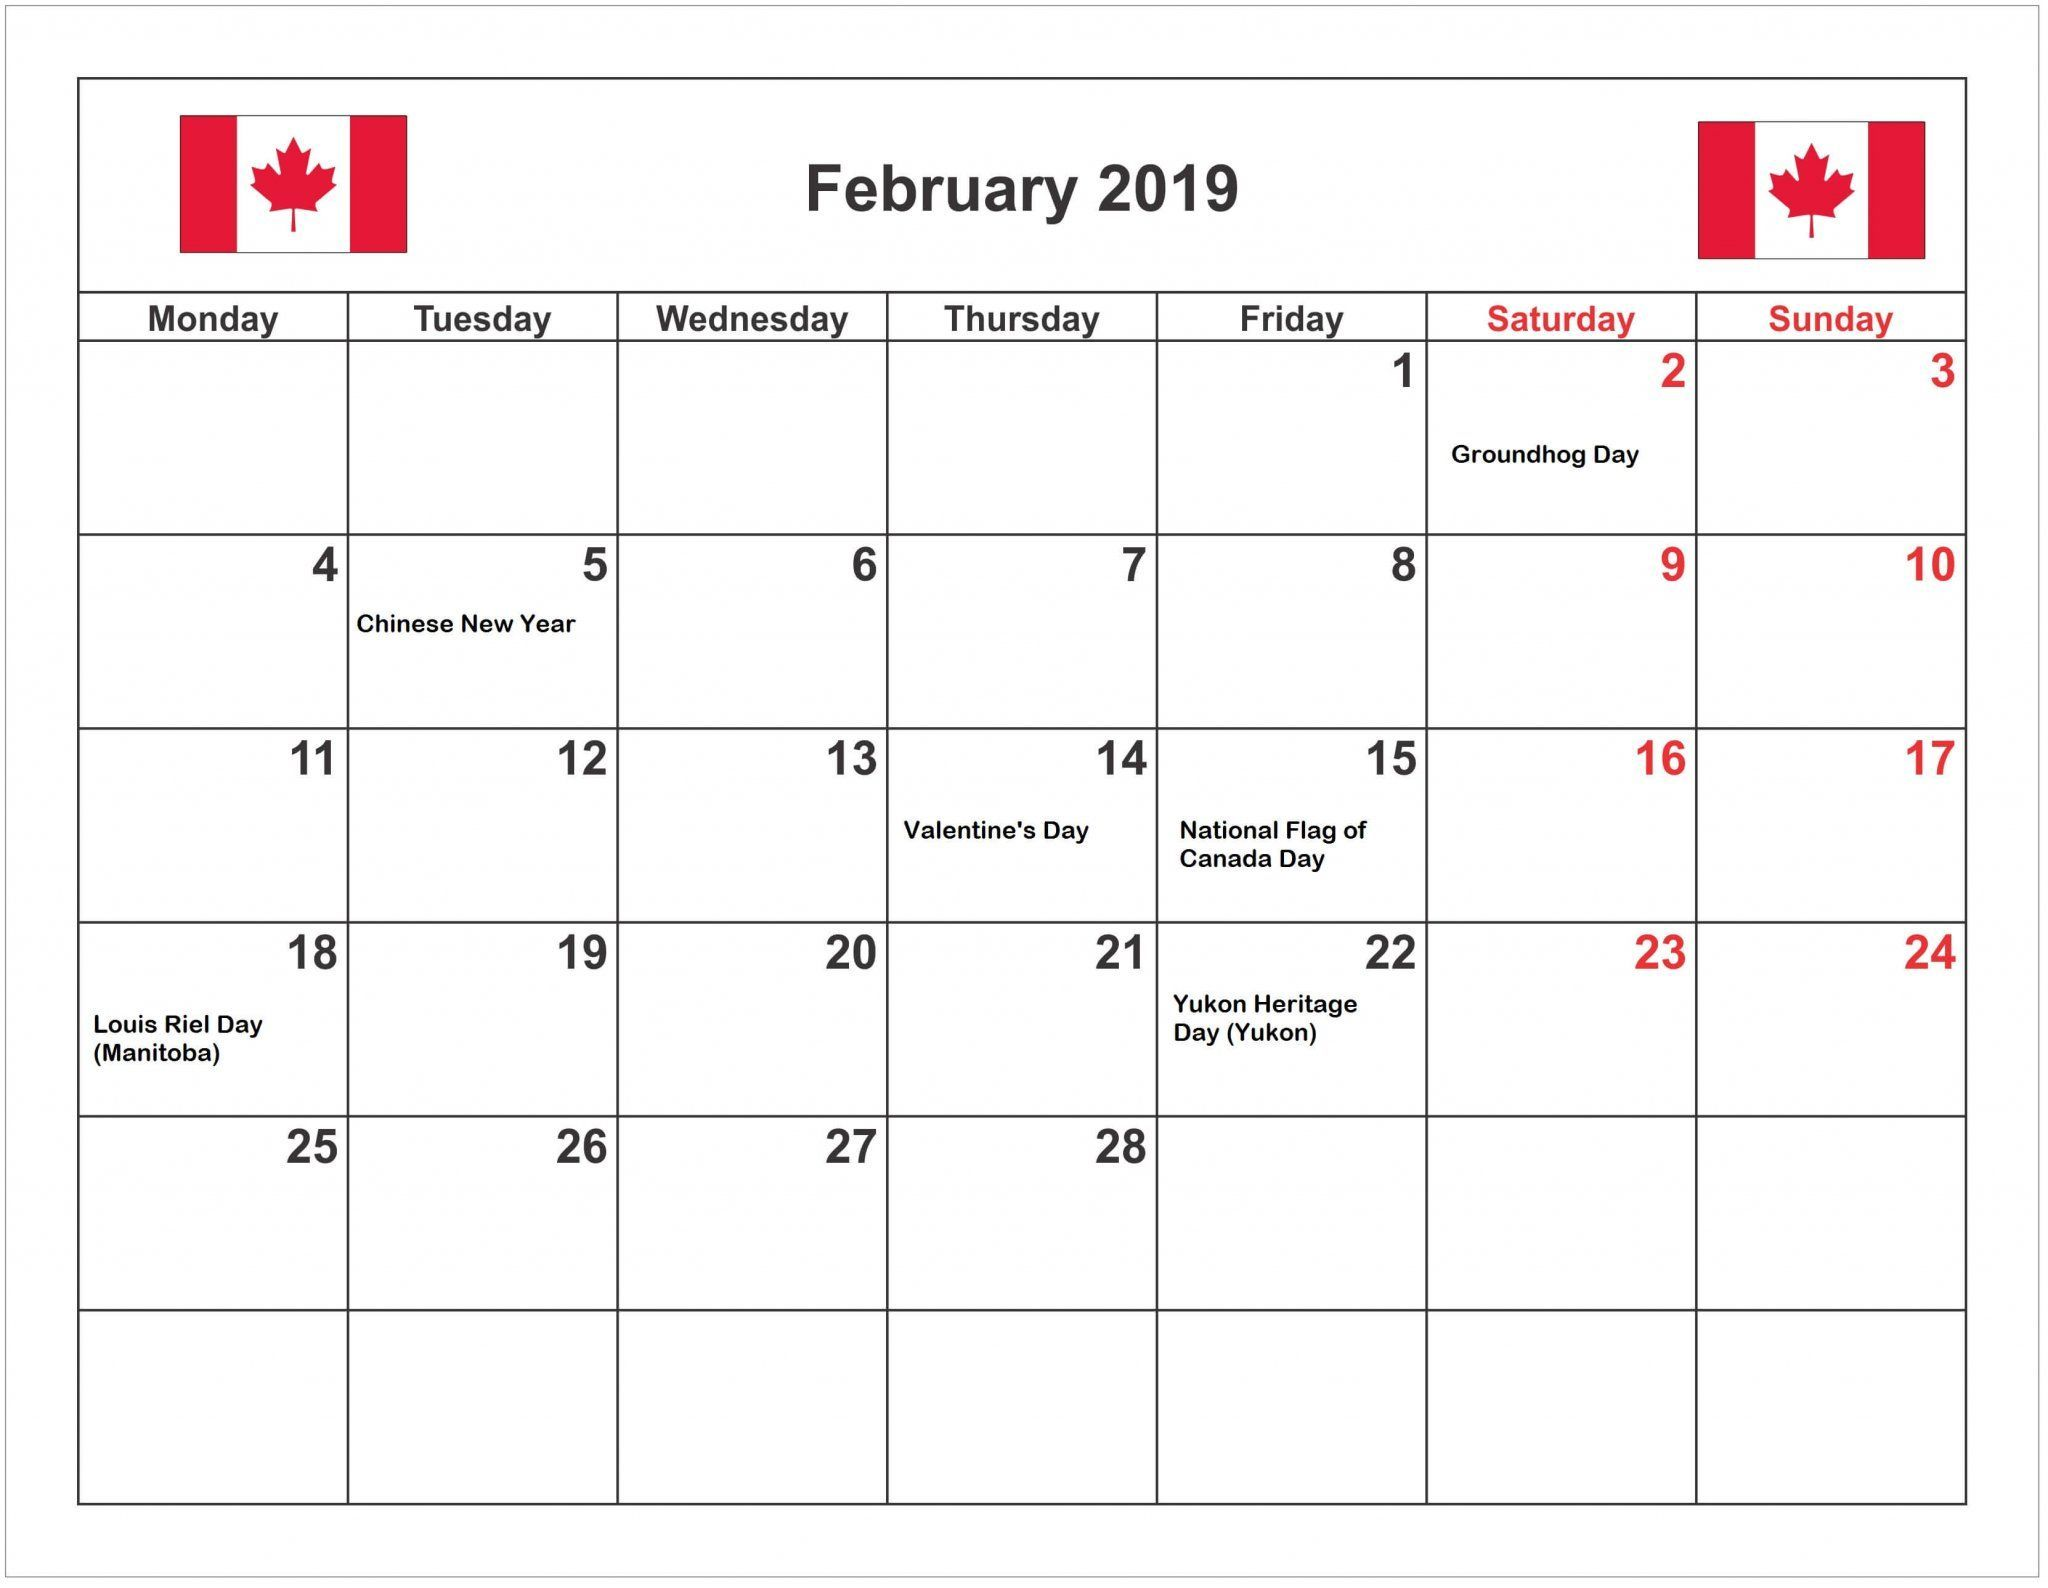 February 2020 Calendar With Holidays In US, UK, Canada